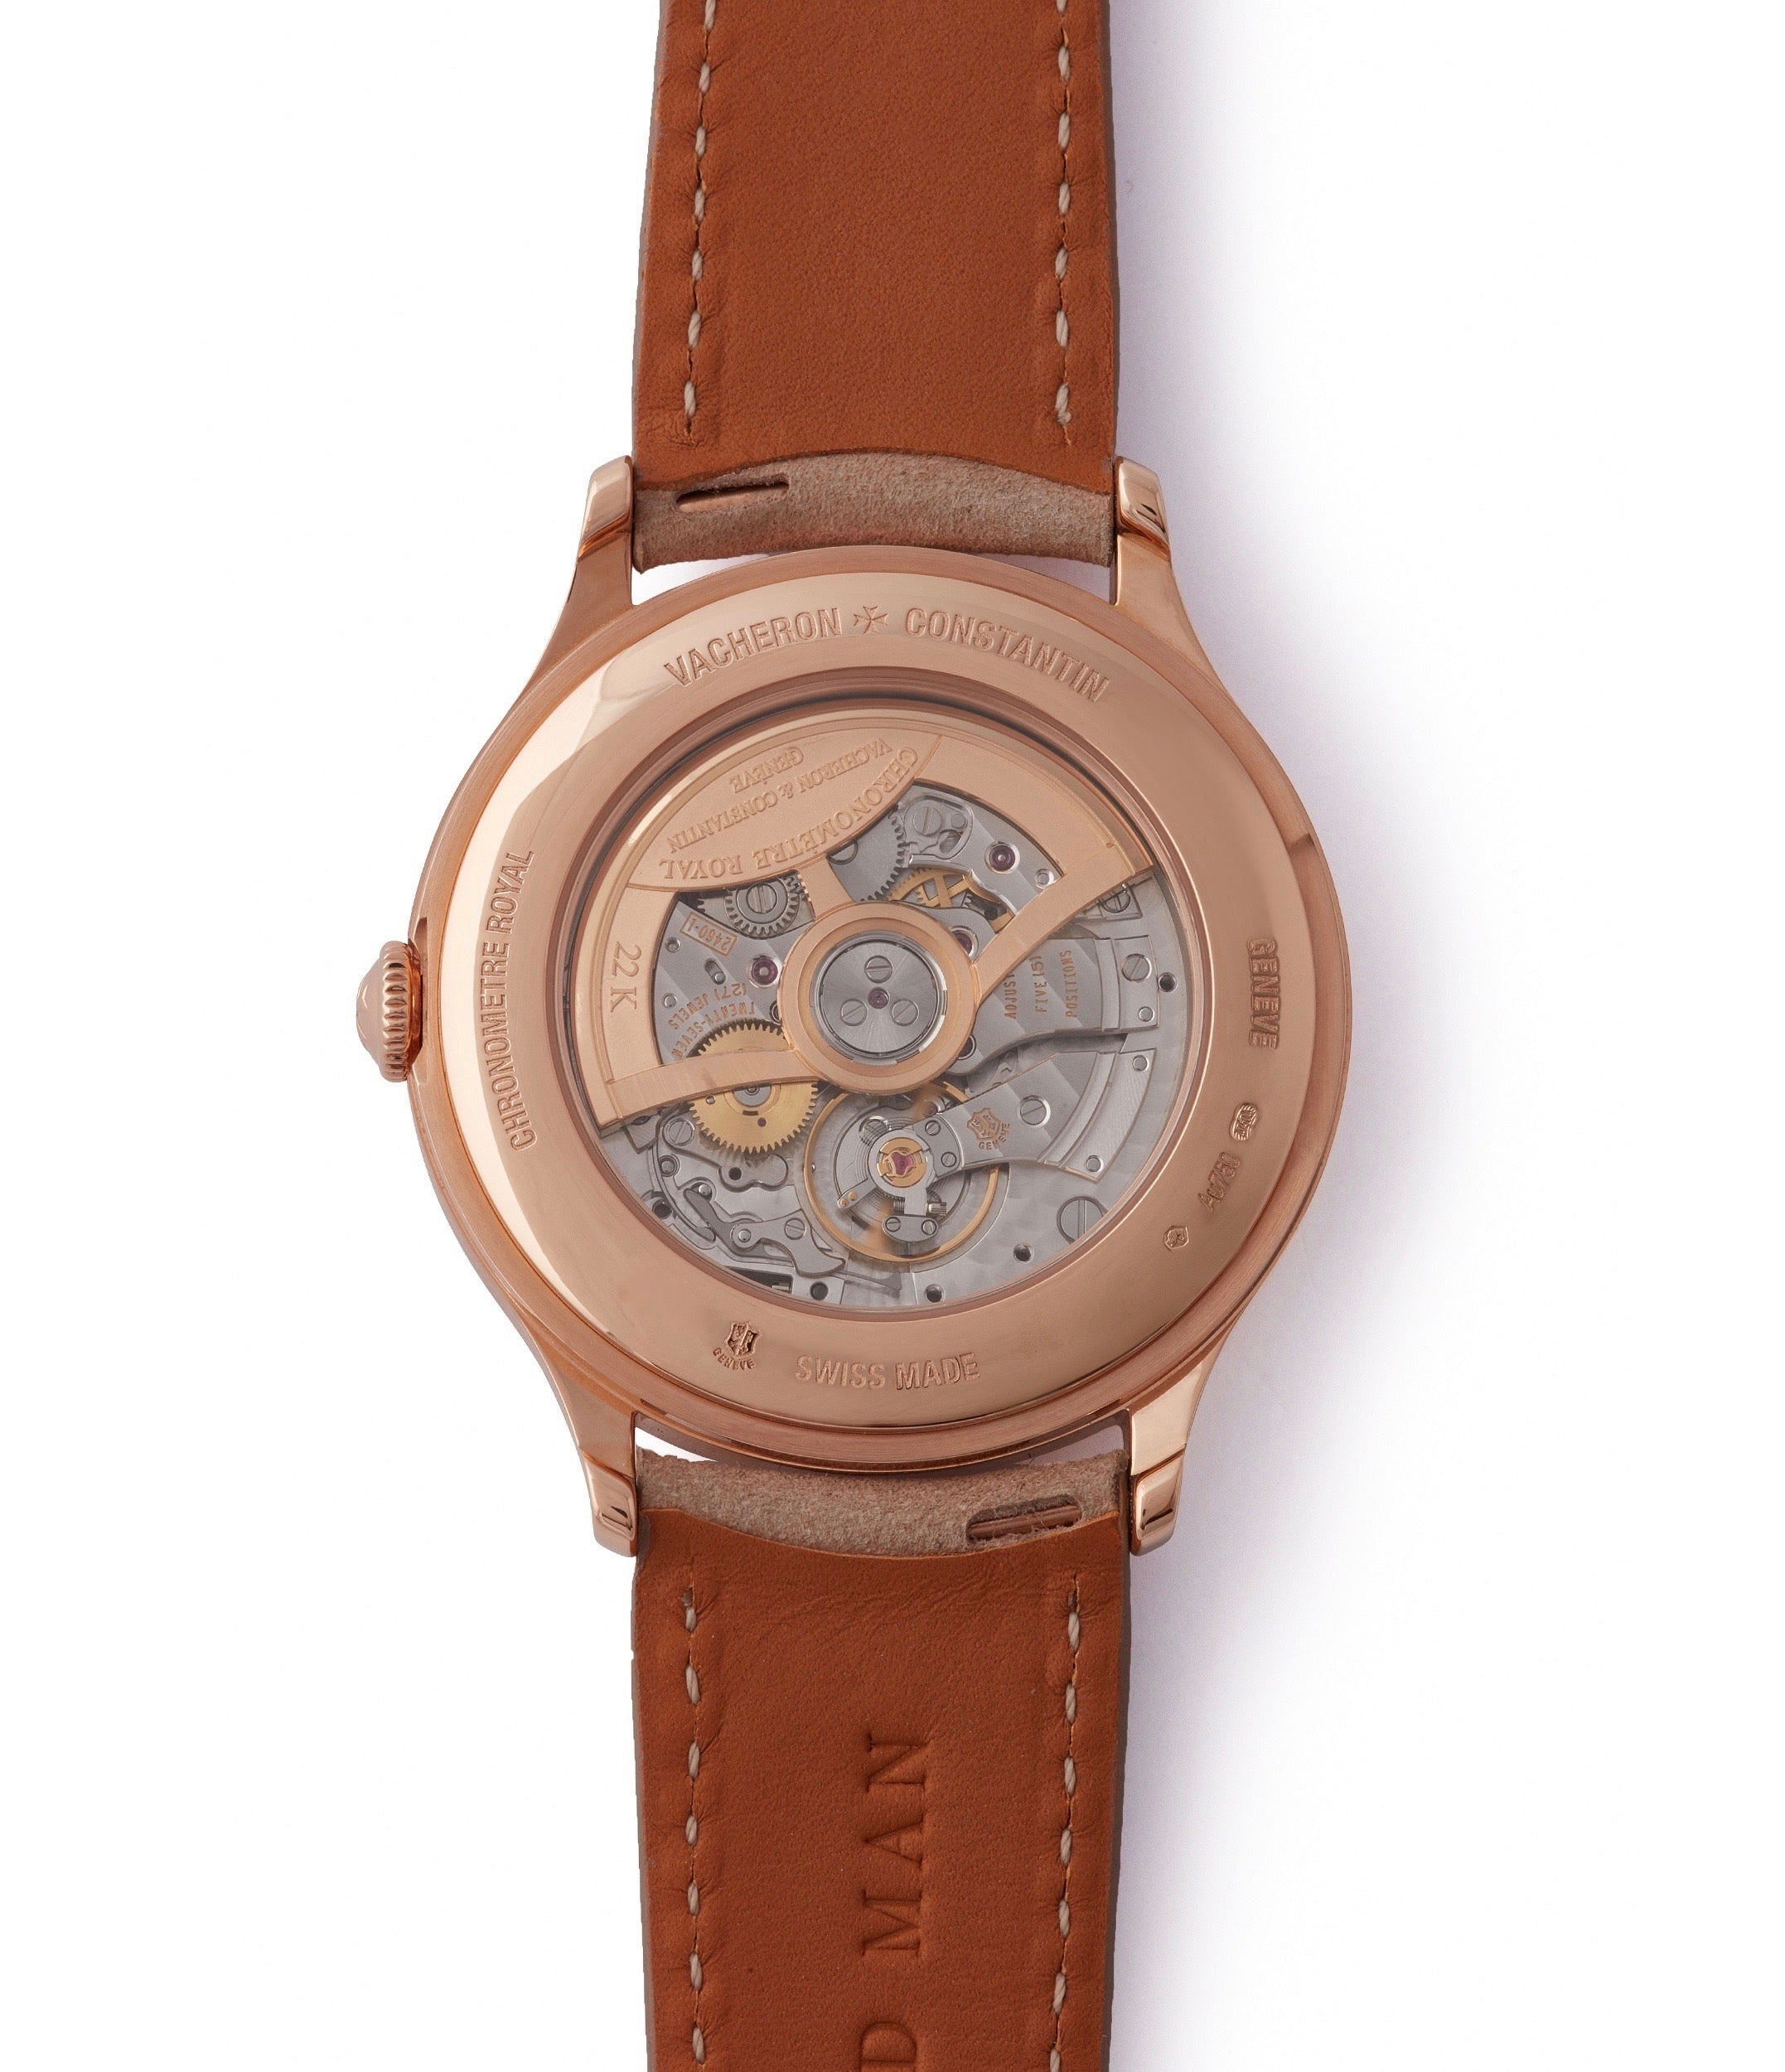 automatic Vacheron Constantin Historiques Chronometre Royal 1907 86122/000R-9362 rose gold time-only dress watch for sale online at A Collected Man London